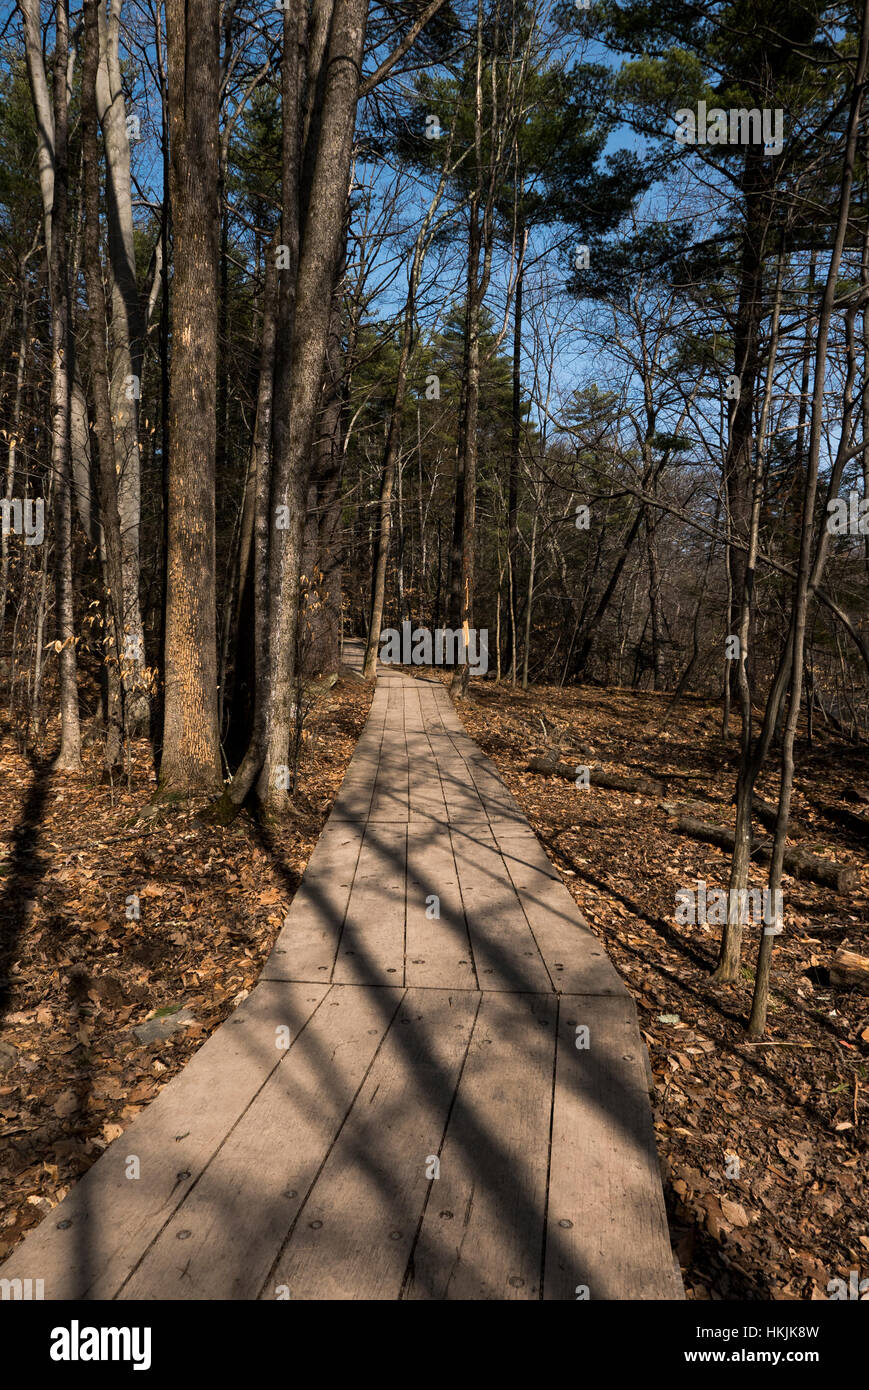 Boardwalk trail through woods. - Stock Image